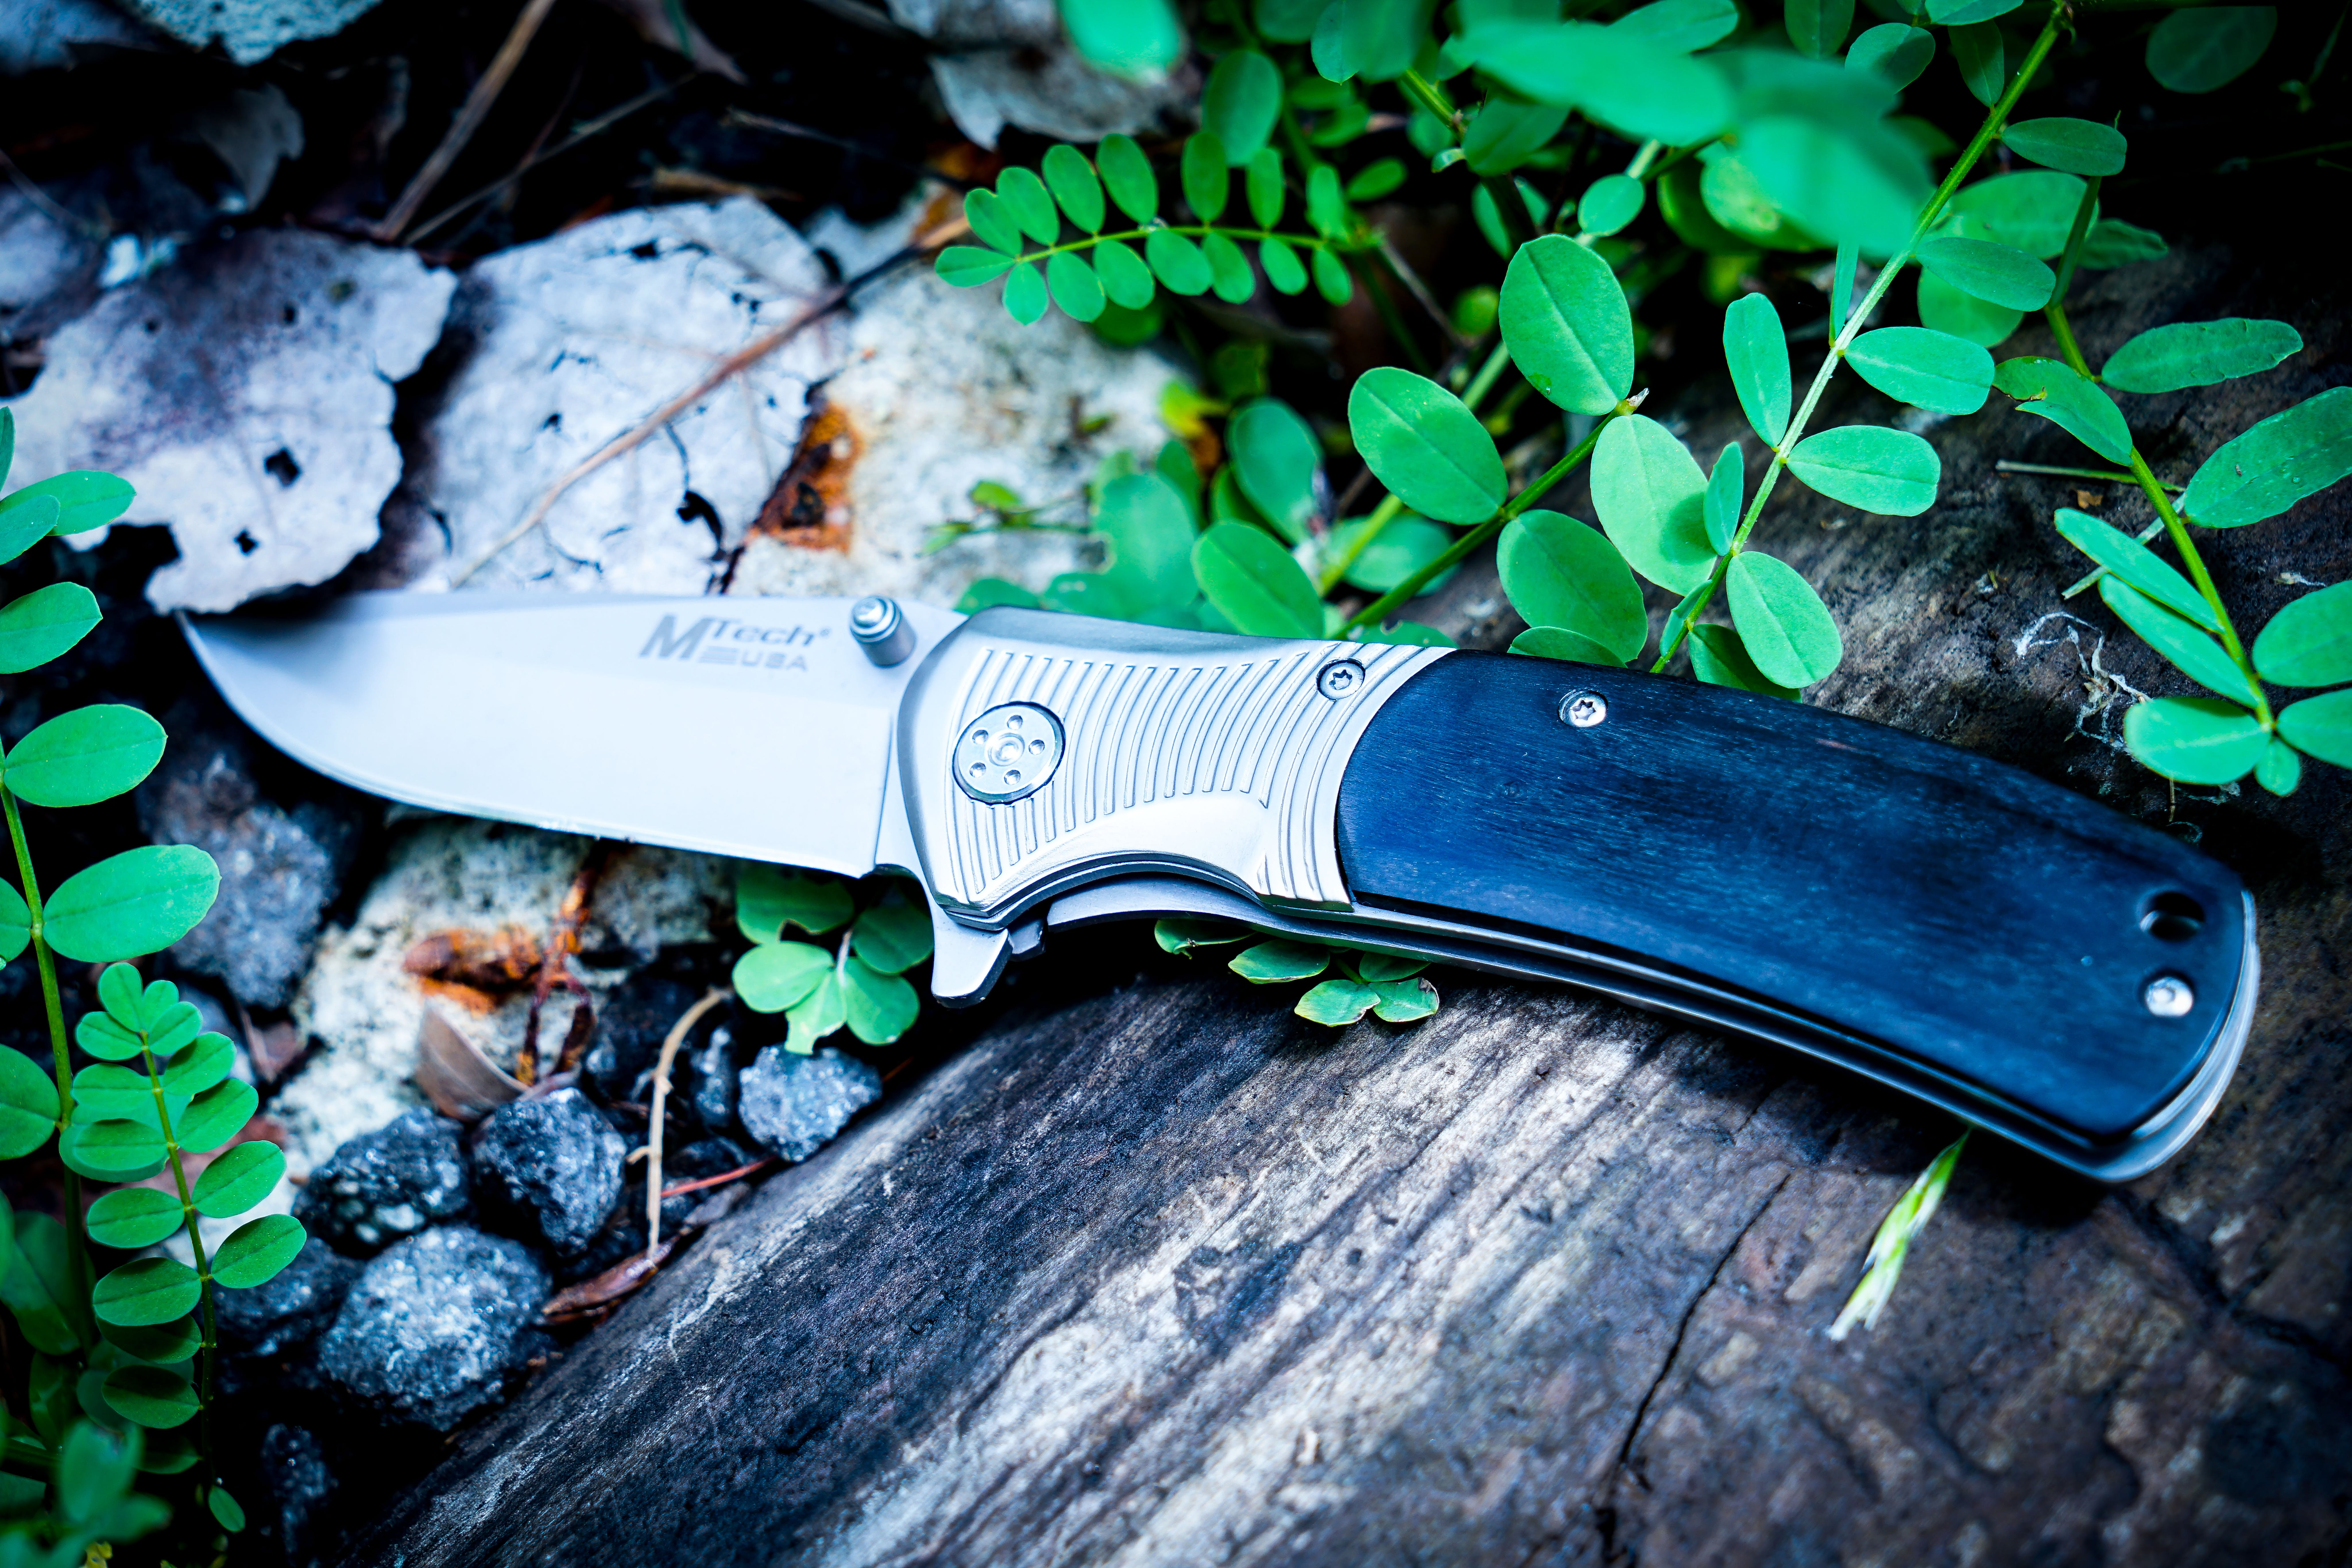 Photography of Knife Near Leaves